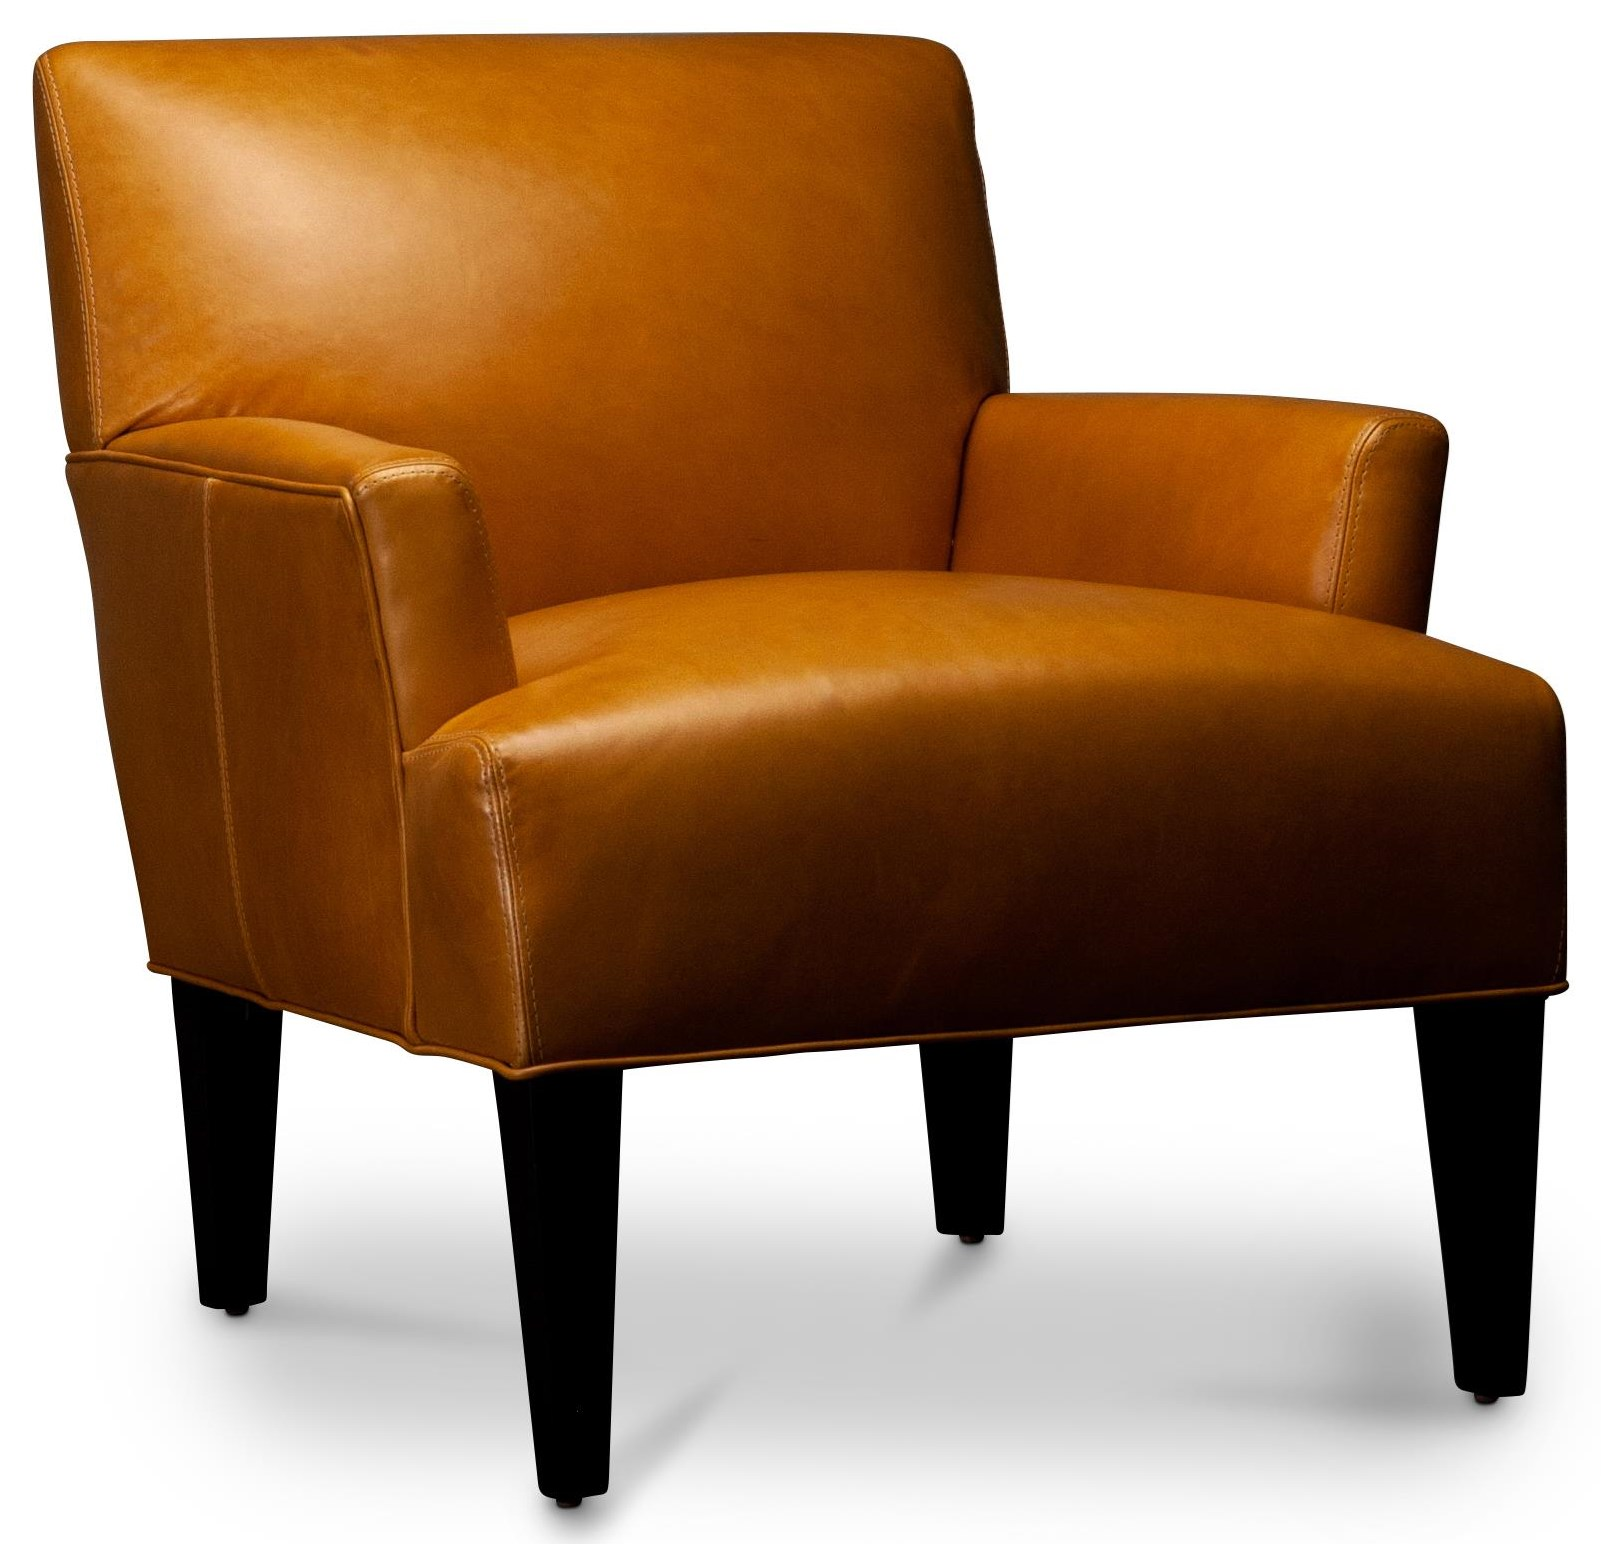 Nevaeh Nevaeh Leather Accent Chair by Jonathan Louis at Morris Home